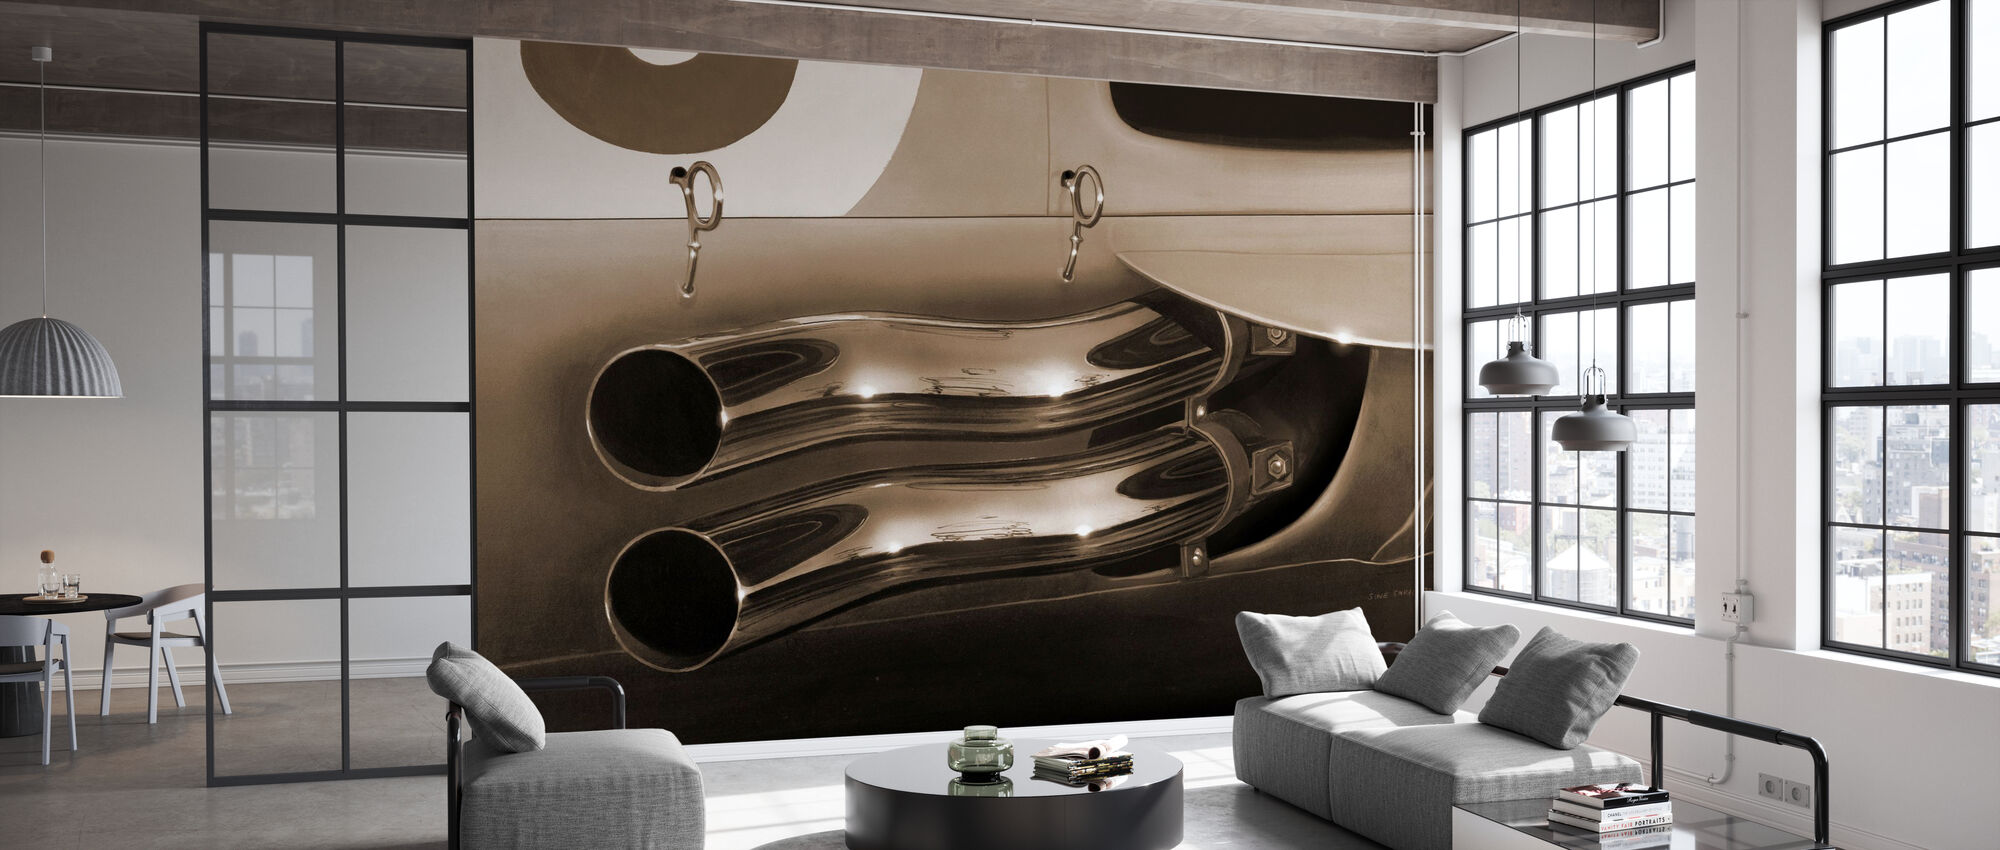 Exhaust Pipes Sepia - Wallpaper - Office